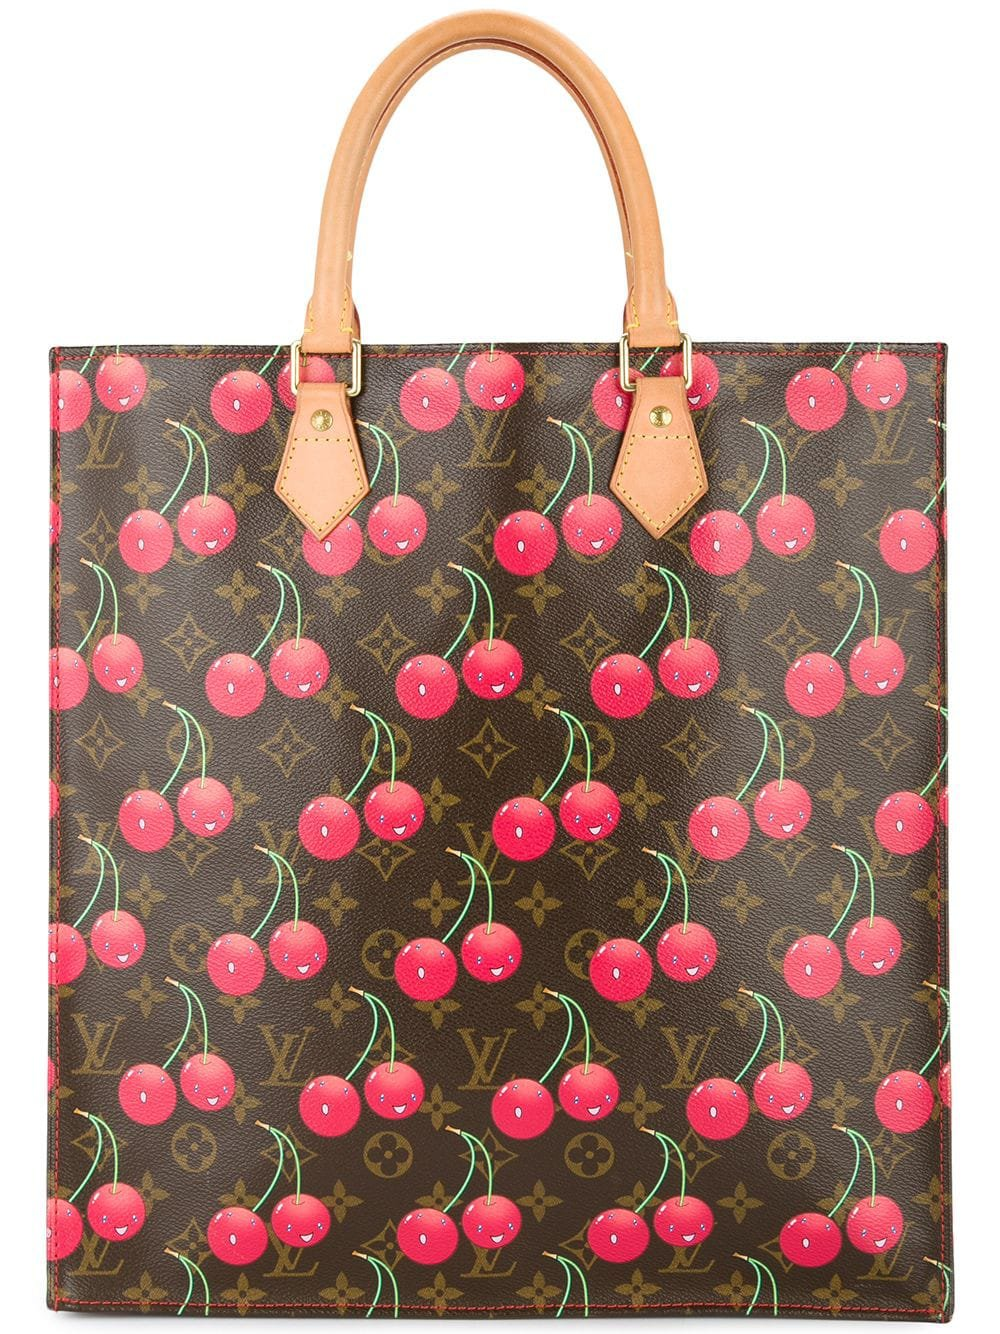 LOUIS VUITTON PRE-OWNED SAC PLAT HAND TOTE BAG MONOGRAM CHERRY CANVAS LEATHER - Farfetch